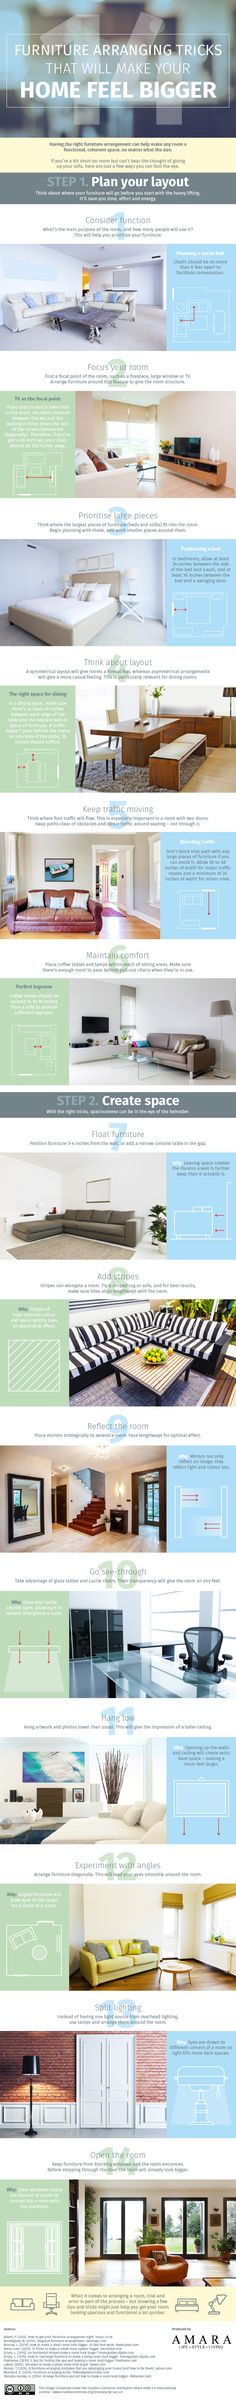 14 Furniture Arranging Tricks that Will Make your Home Feel Bigger #infographic